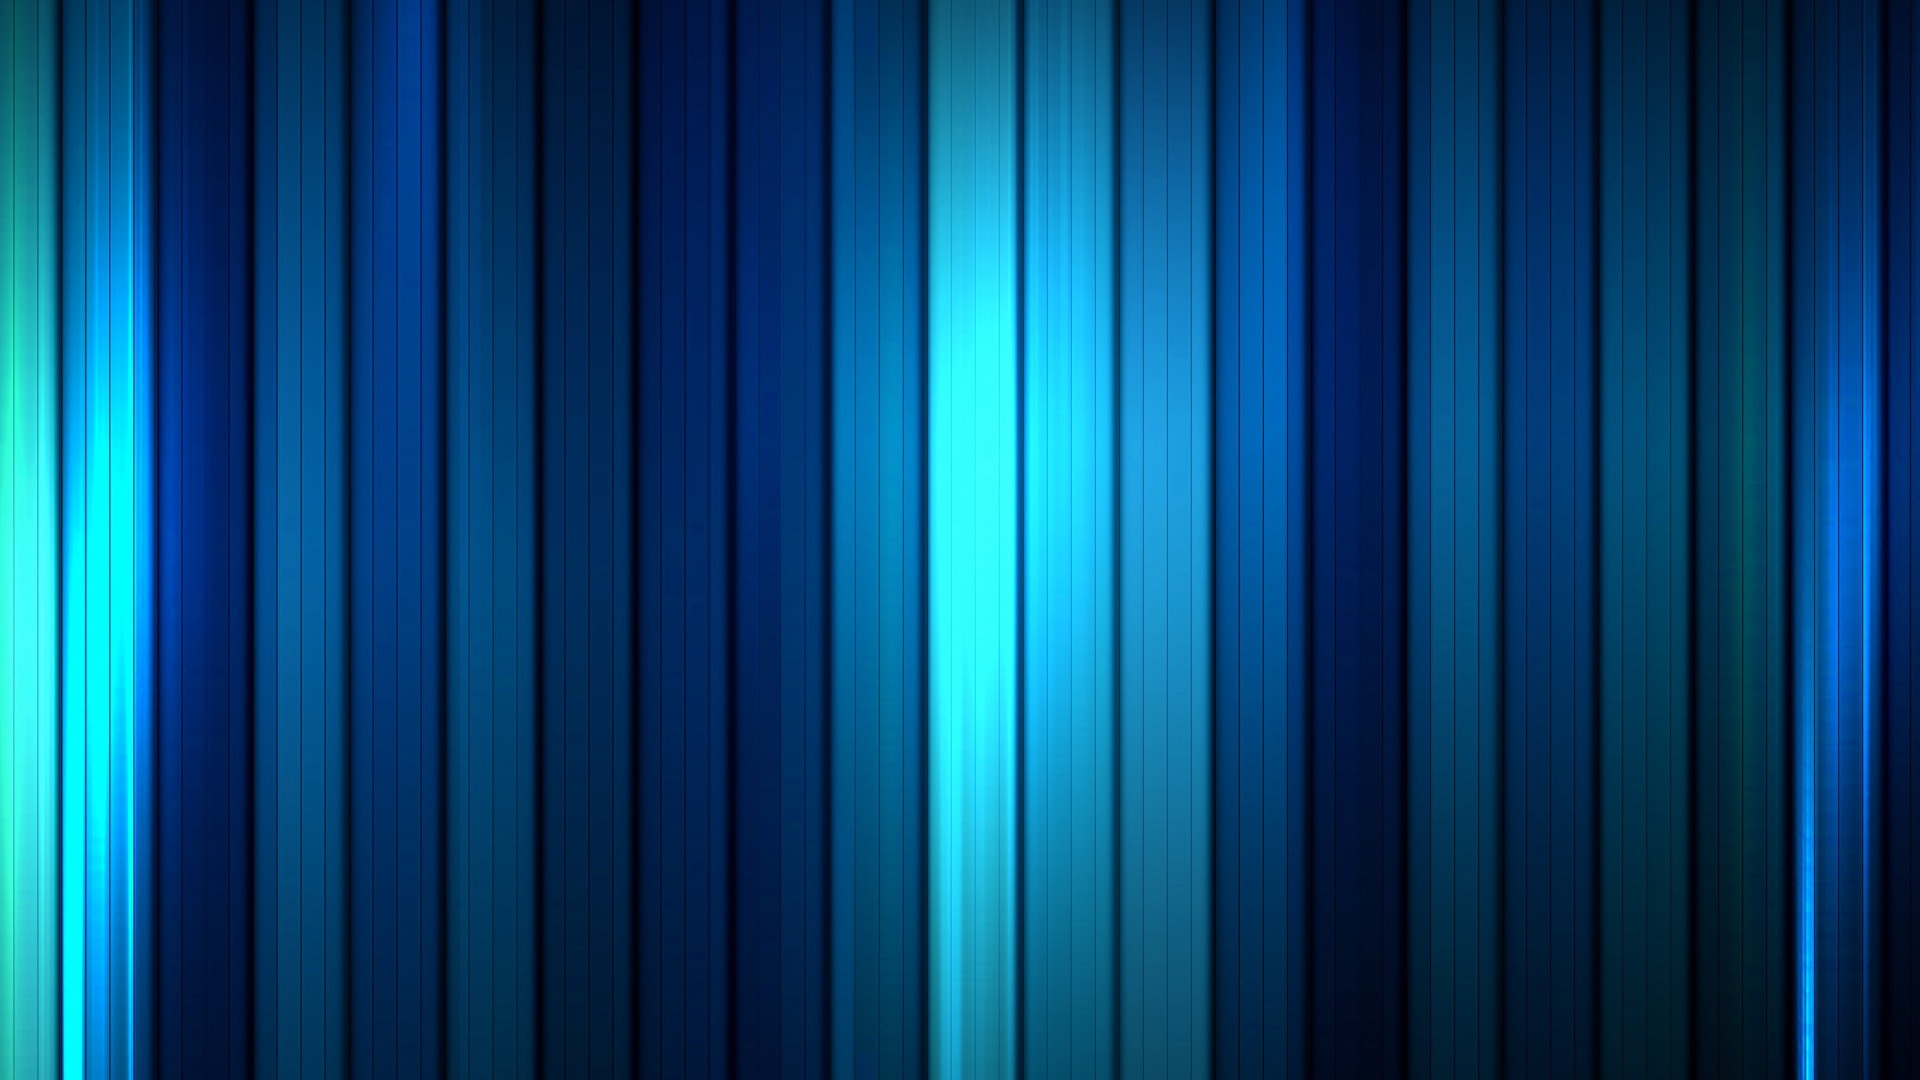 Patterns For Girls Wallpaper High Defintion Blue Patterns Striped Texture 1920x1080 Wallpaper